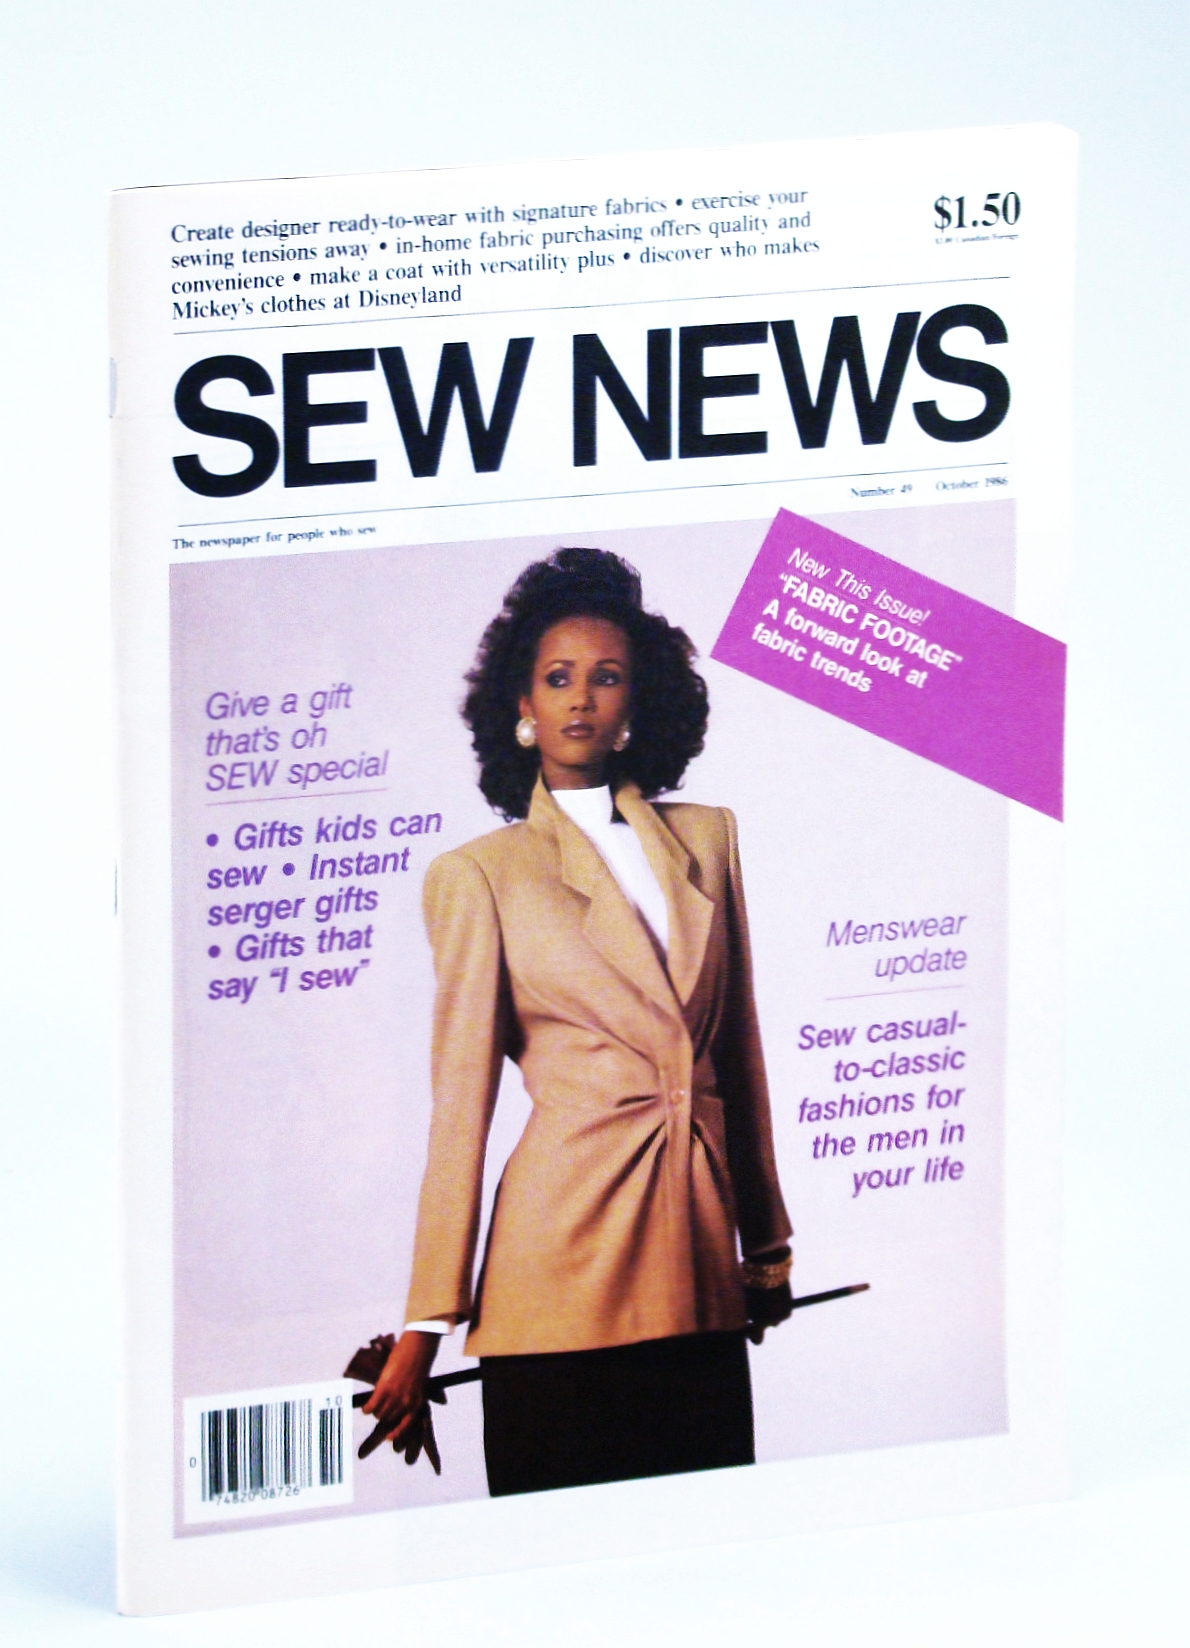 Image for Sew News Magazine - The Fashion Magazine for People Who Sew, Number 49, October [Oct.], 1986 - Sew Casual-to-Classic Fashions for the Men in Your Life